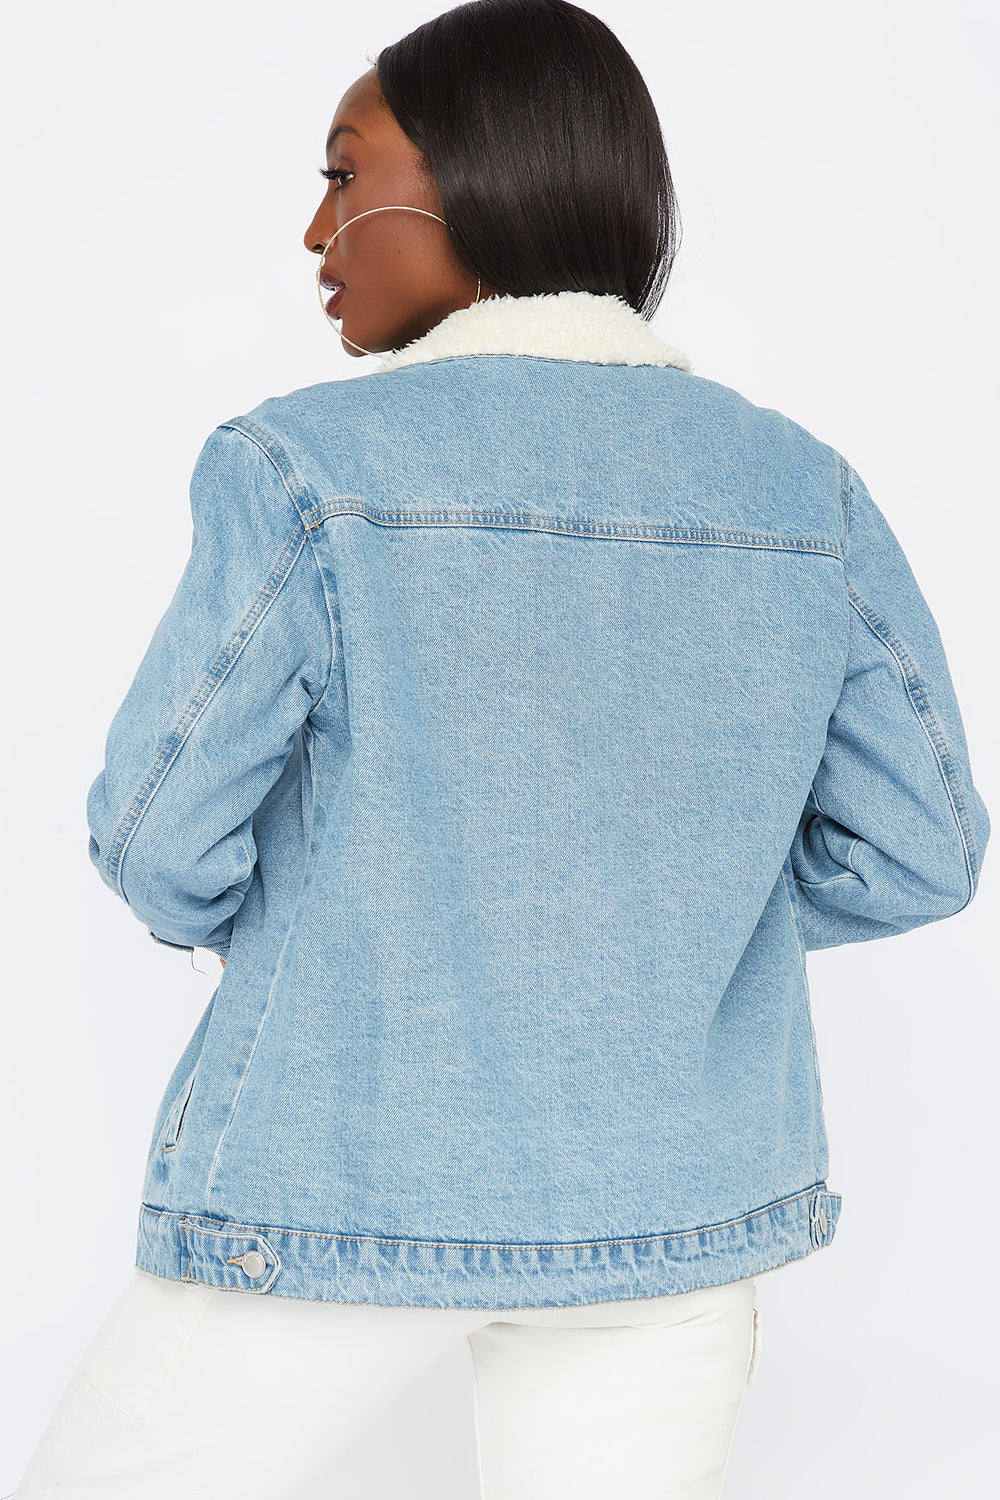 Denim Sherpa Trucker Jacket Light Denim Blue